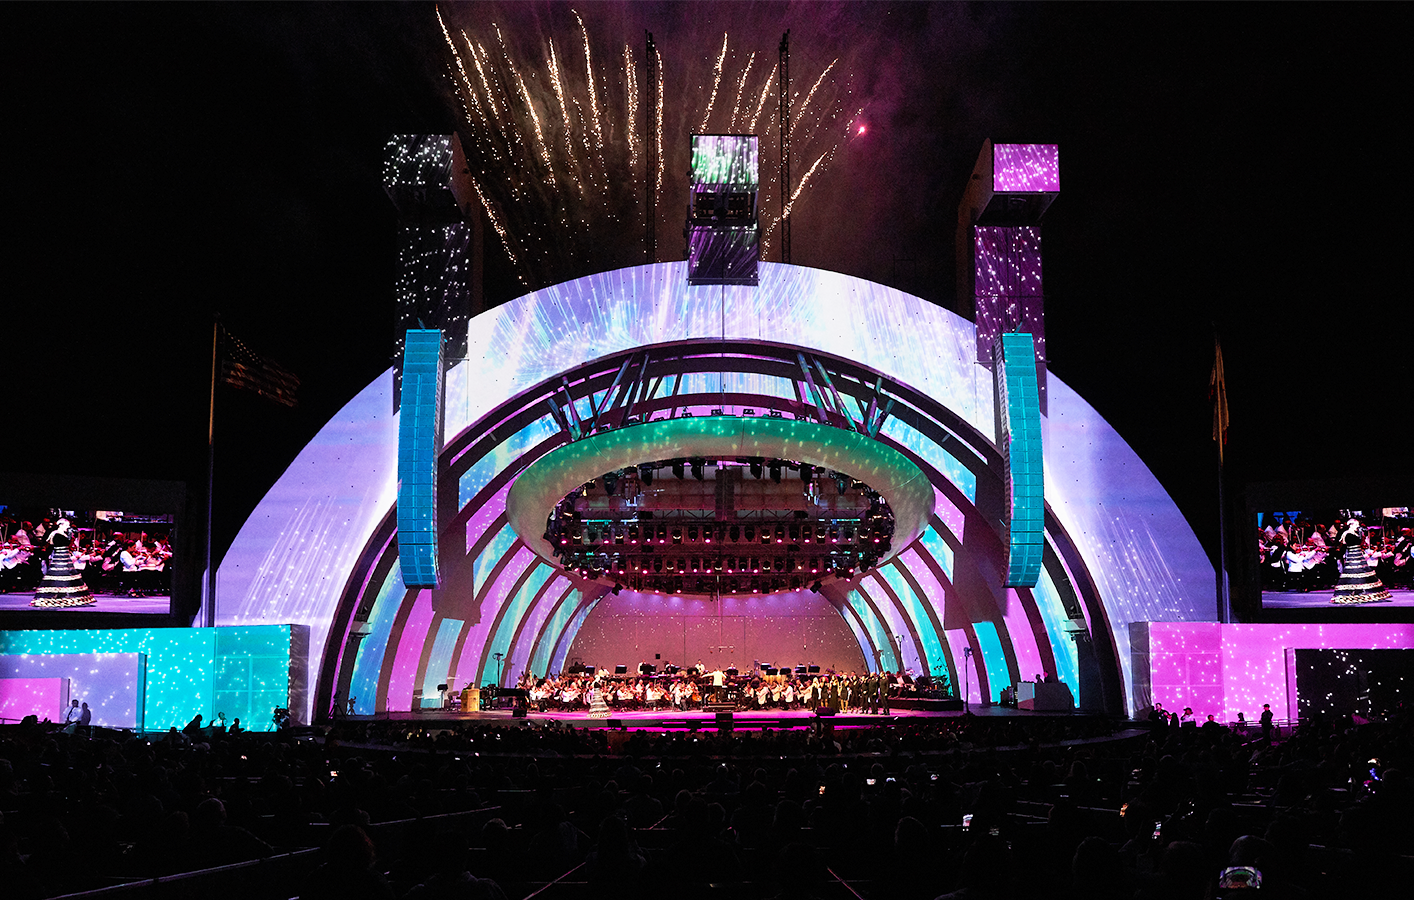 Hollywood Bowl - LA Philharmonic